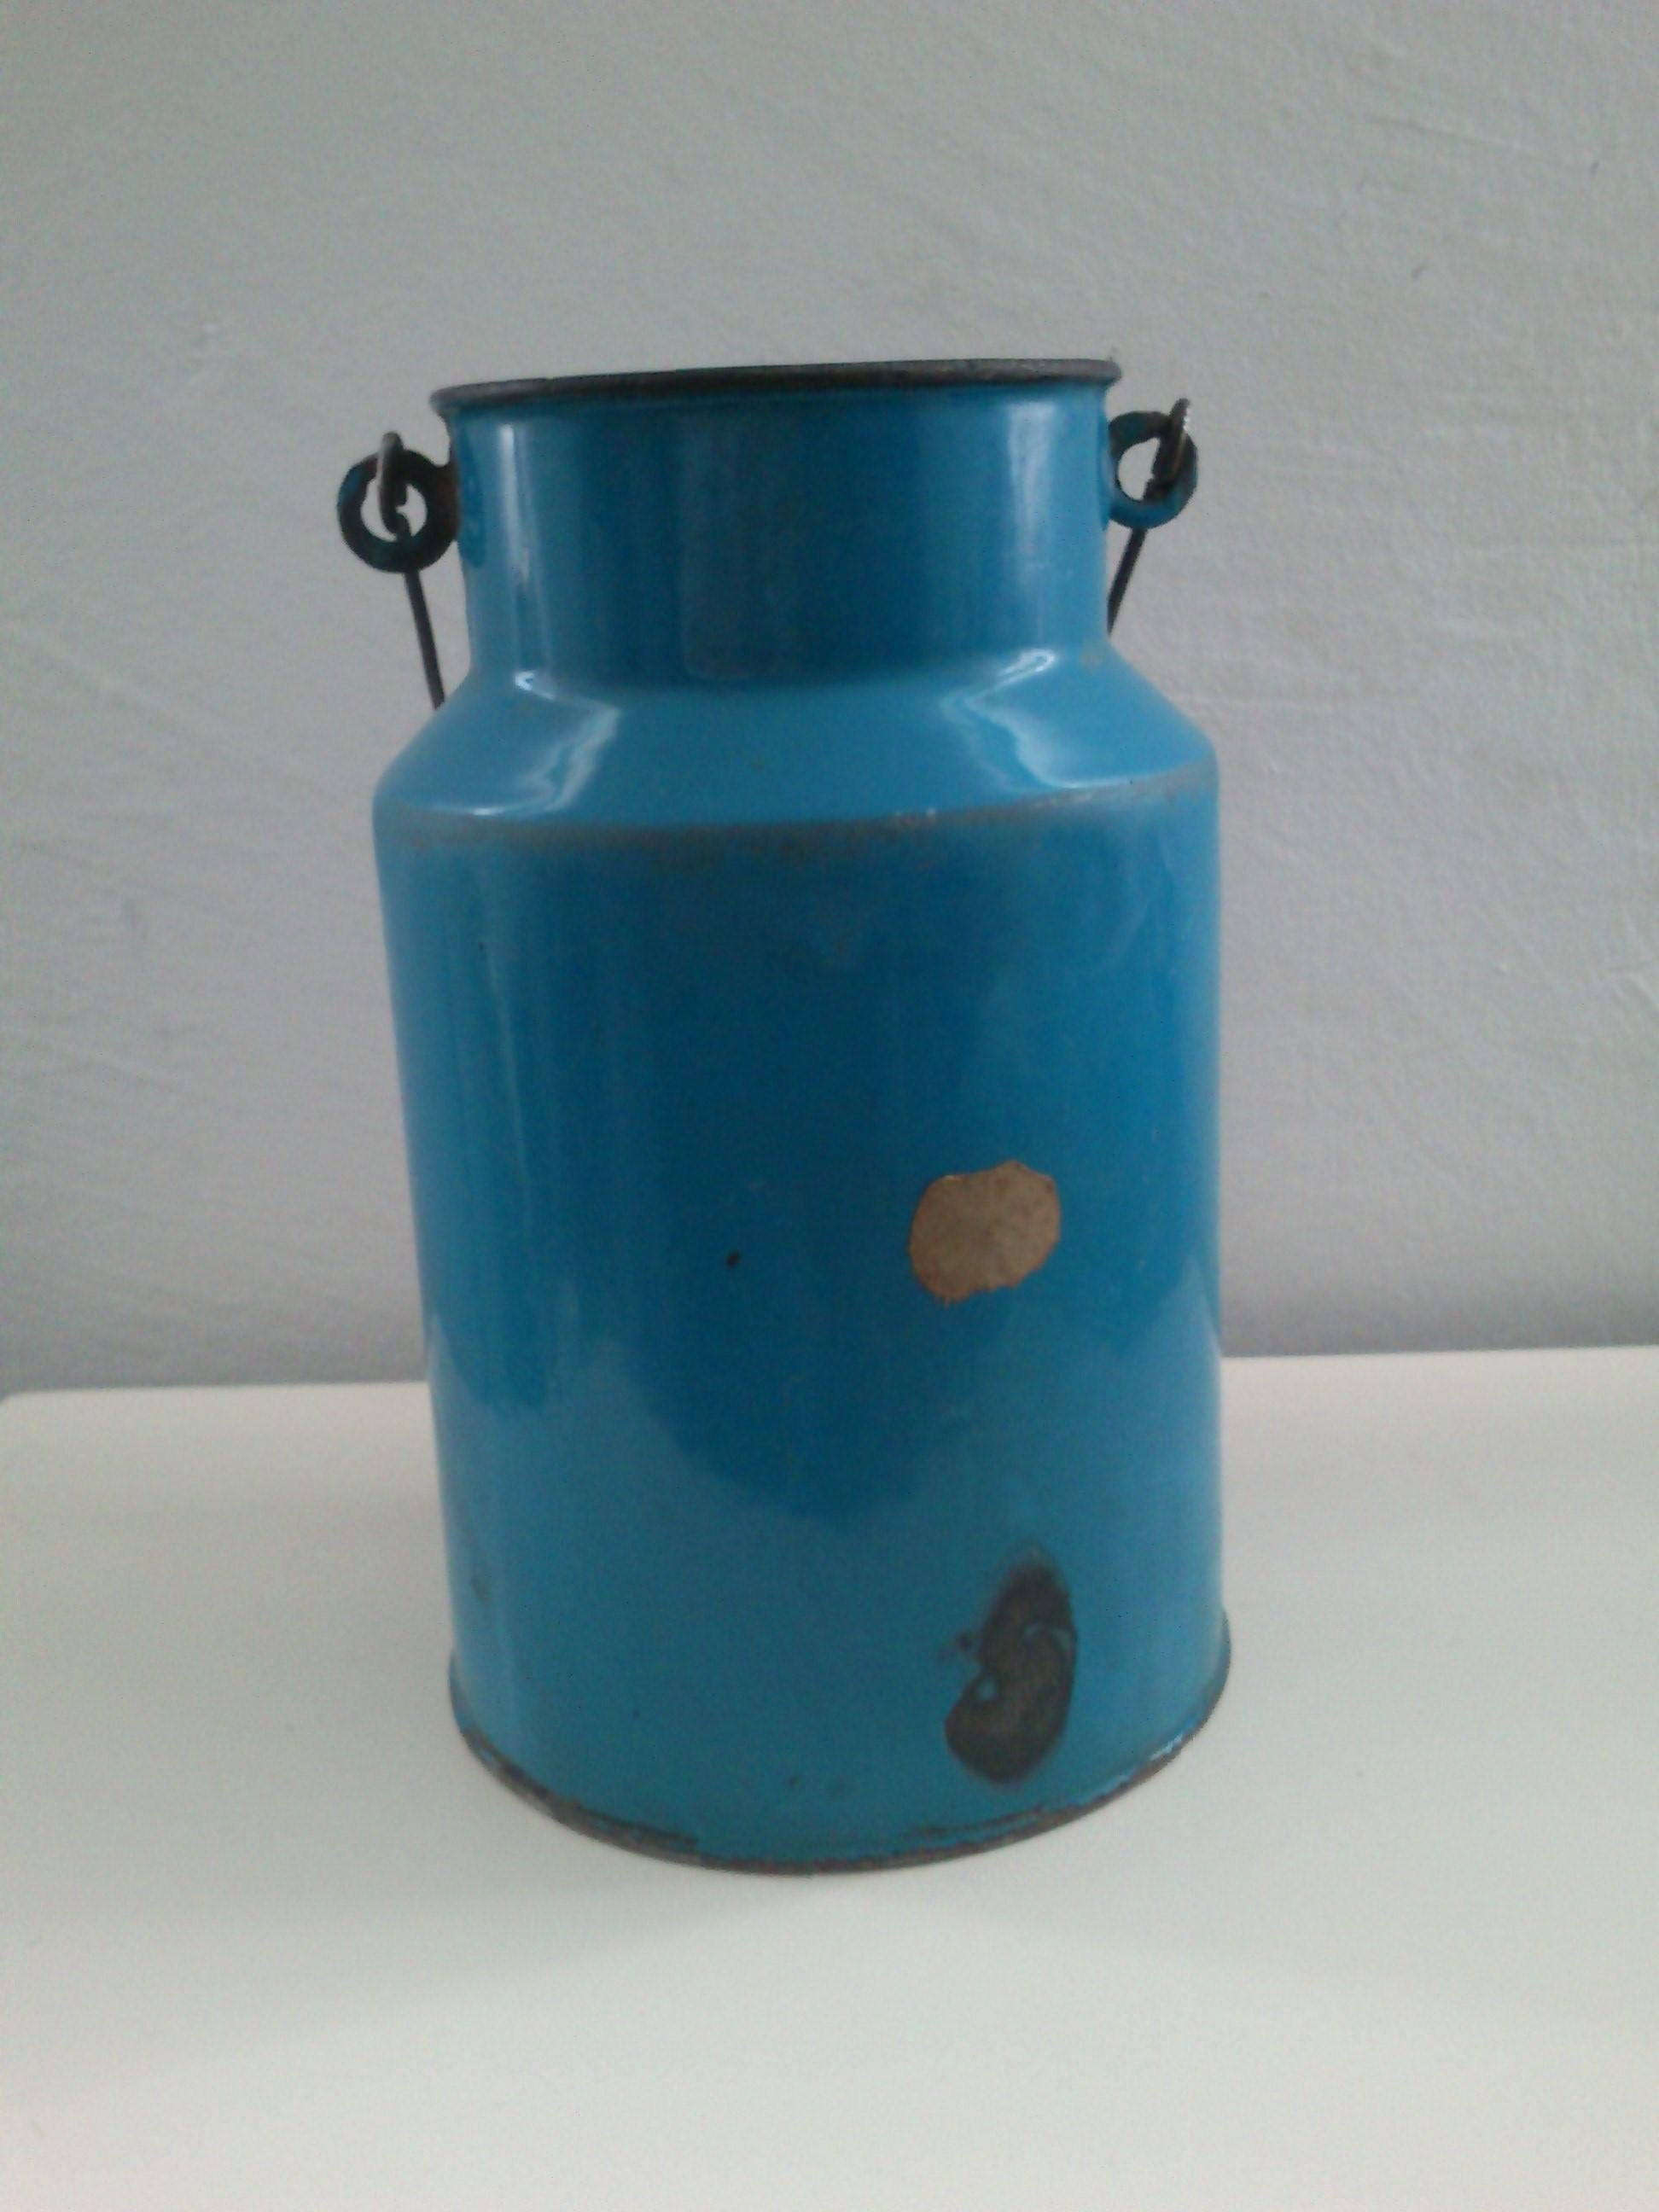 Decorative Milk Urn Vintage Blue Enamel Milk Can